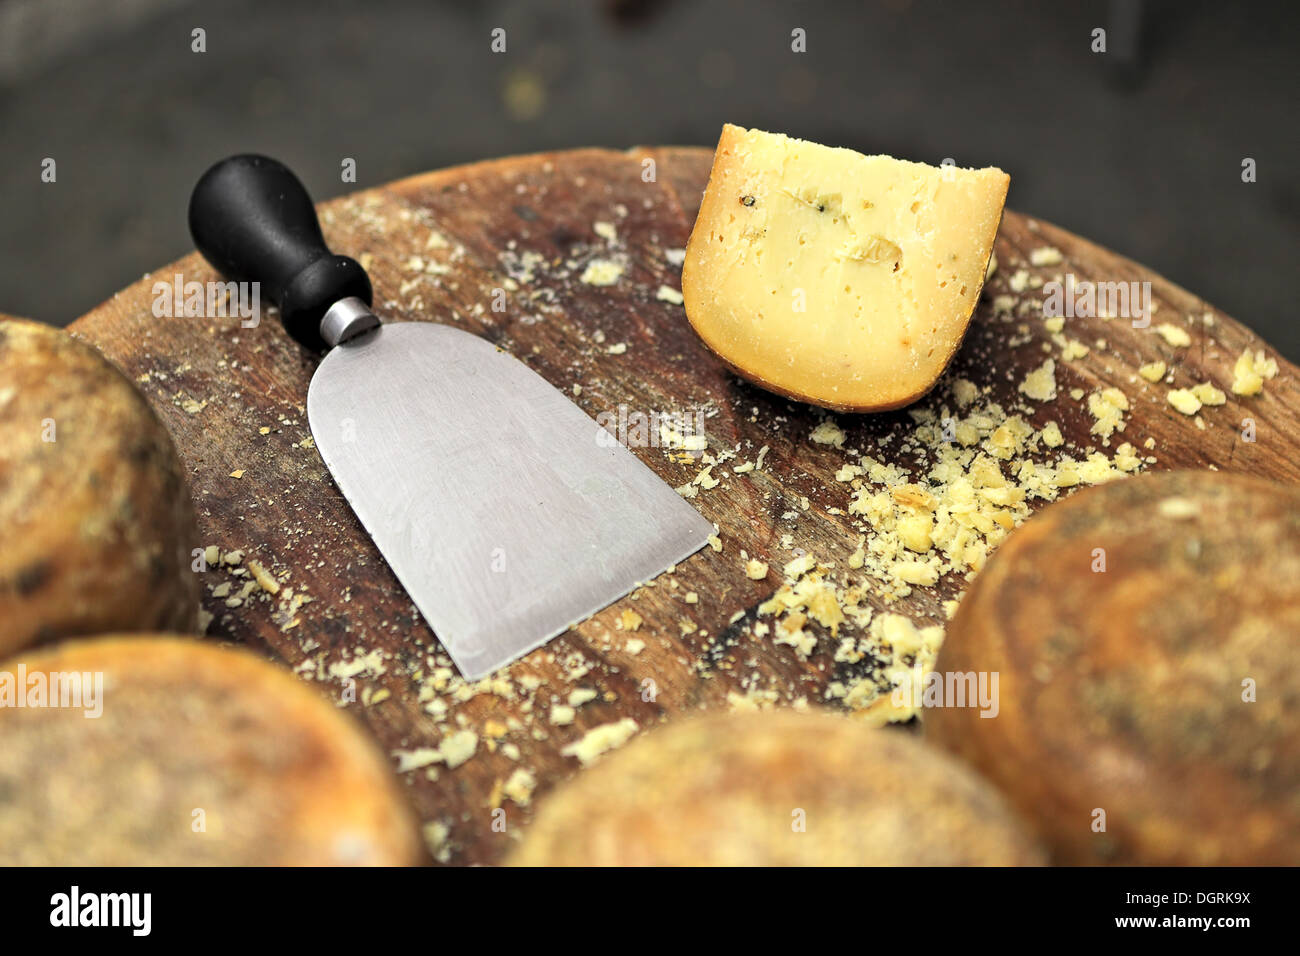 Special knife and famous italian cheese pecorino on small wooden table. Stock Photo